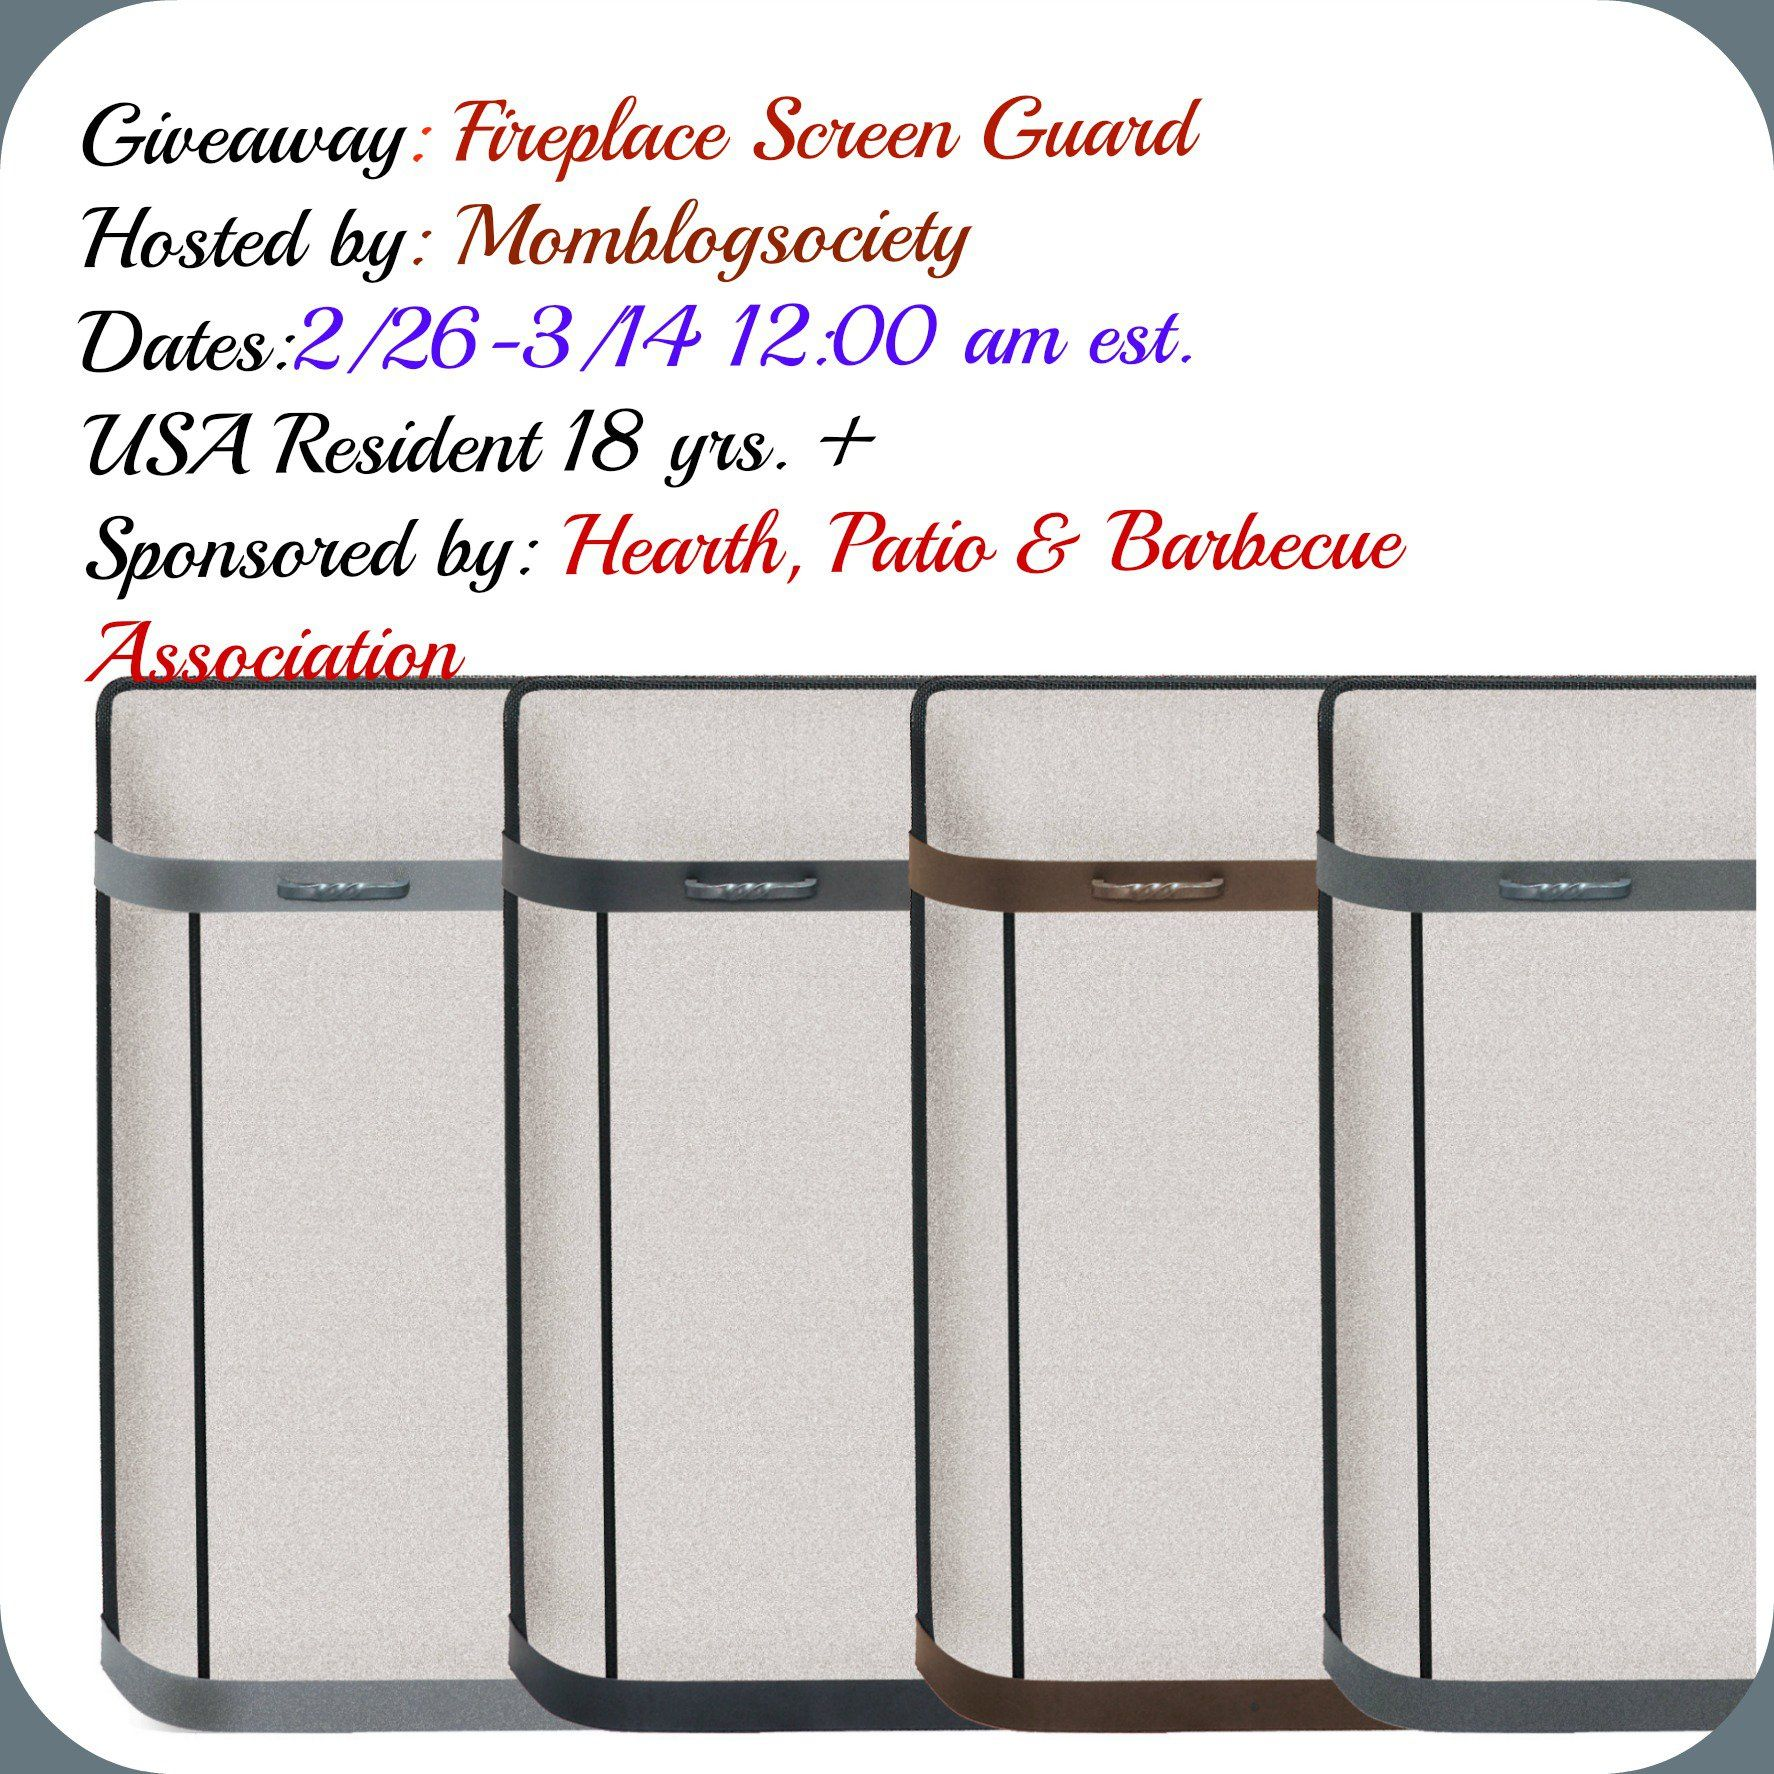 Pilgrim Fireplace Screens Awesome Fireplace Screen Guard Giveaway Usa Only Ends 3 14